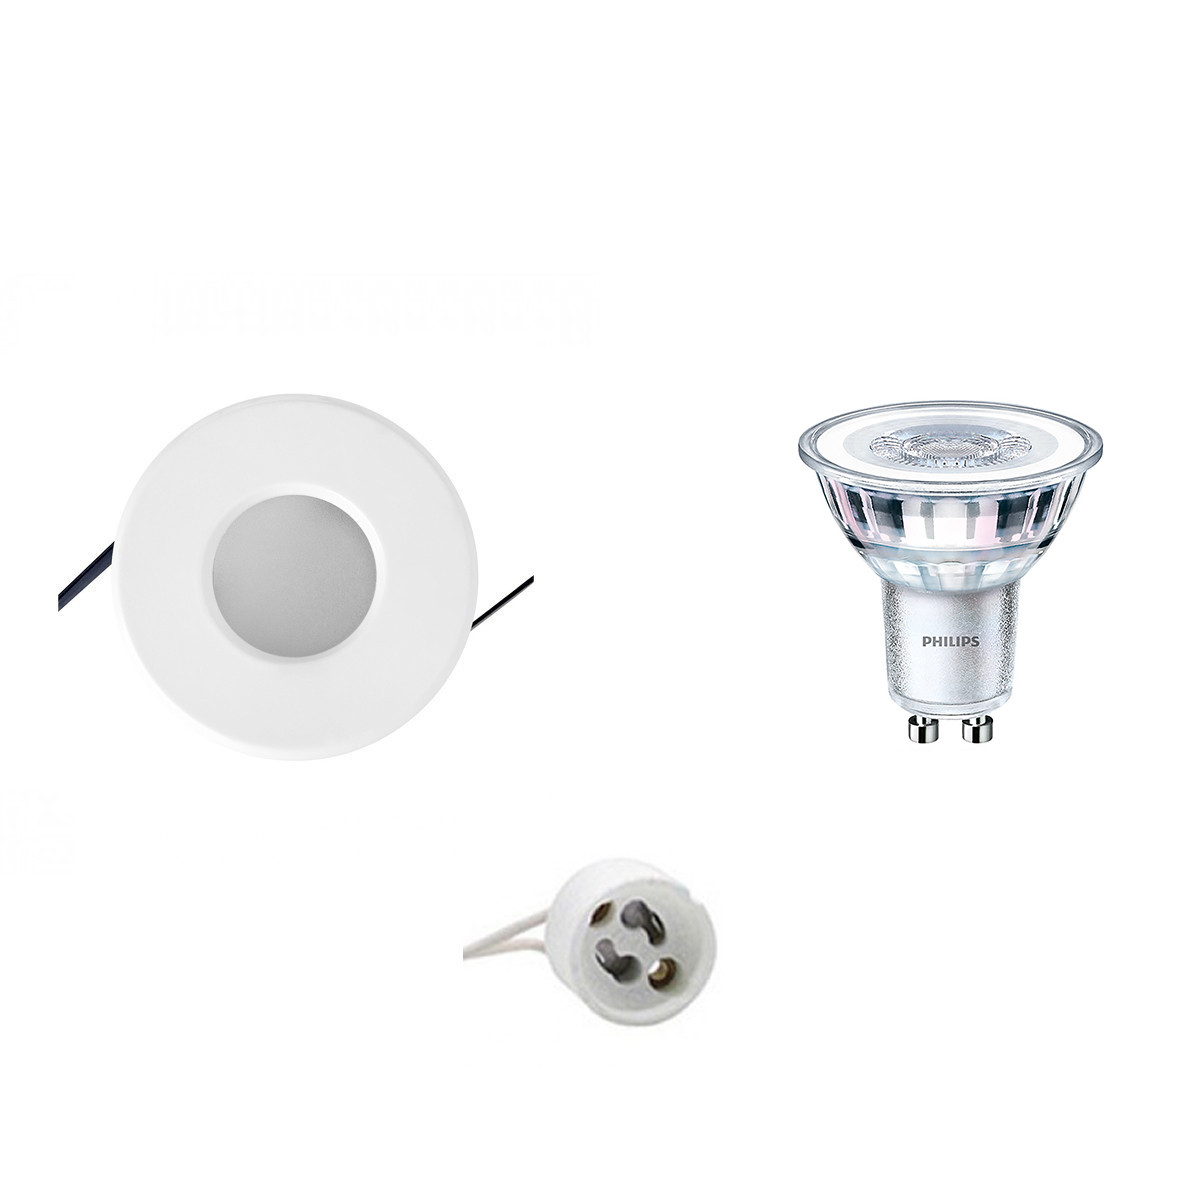 PHILIPS - LED Spot Set - CorePro 840 36D - GU10 Fitting - Waterdicht IP65 - Dimbaar - Inbouw Rond -